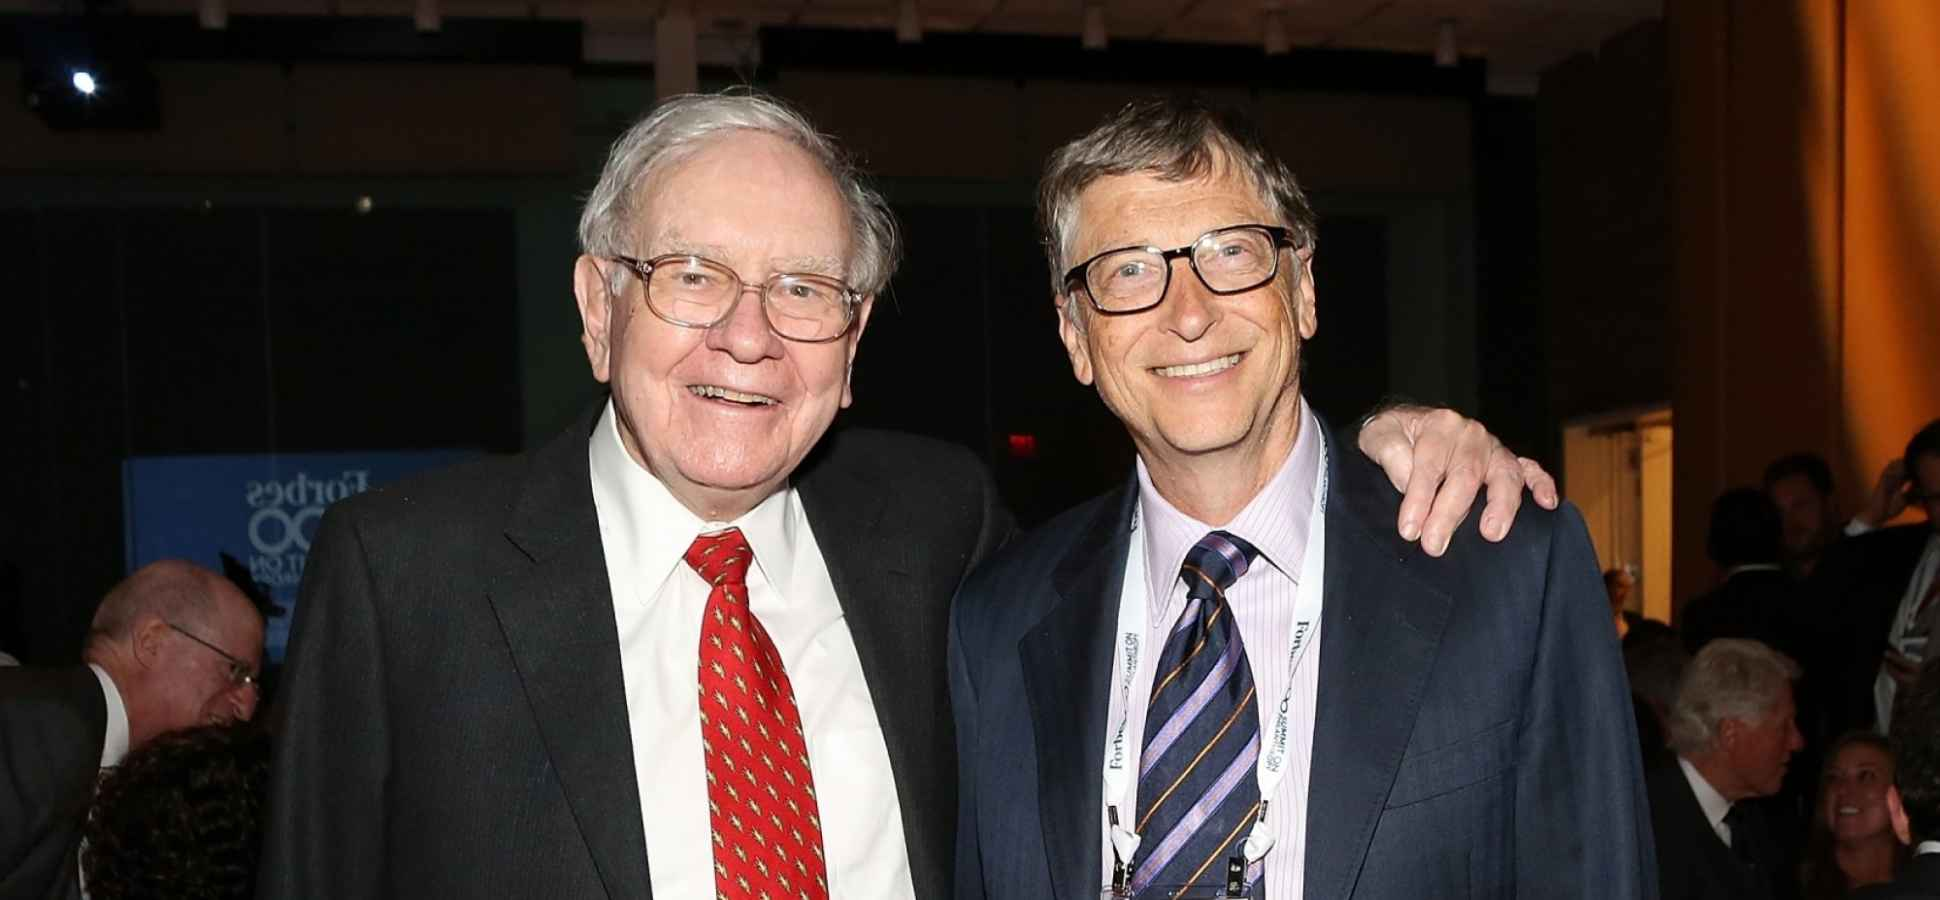 Here's How Warren Buffett Earned More Than Bill Gates and Jeff Bezos in 2016